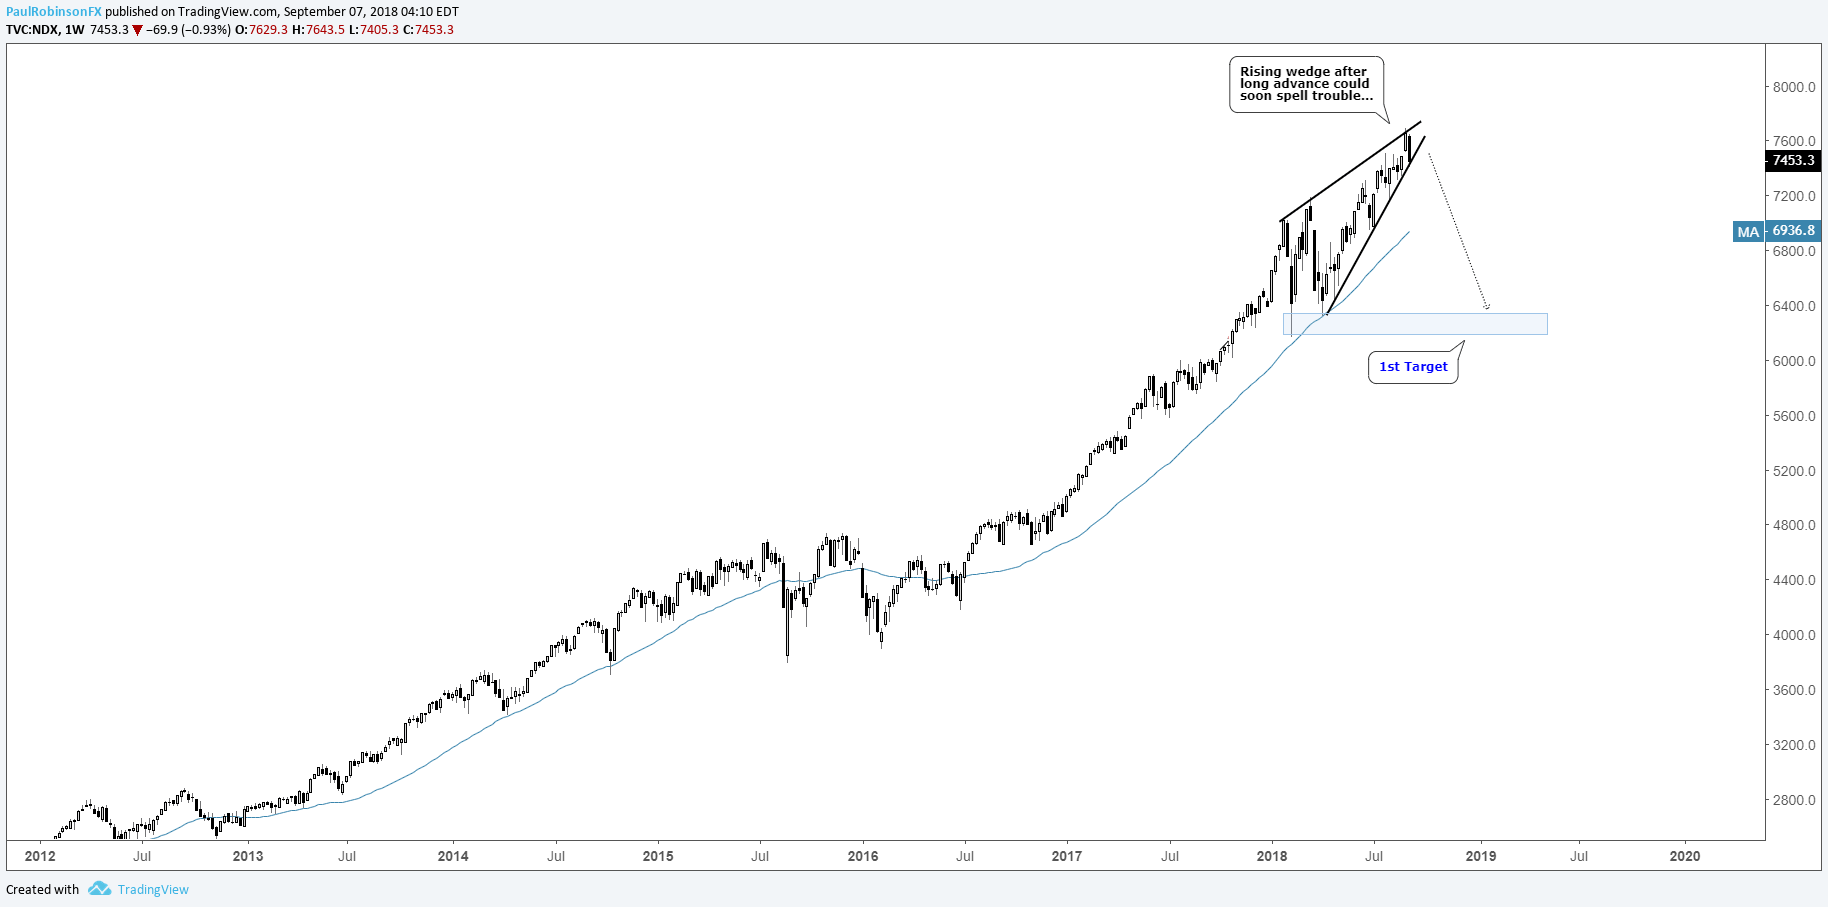 Nasdaq 100, FAANG Charts and What They Could Mean for the